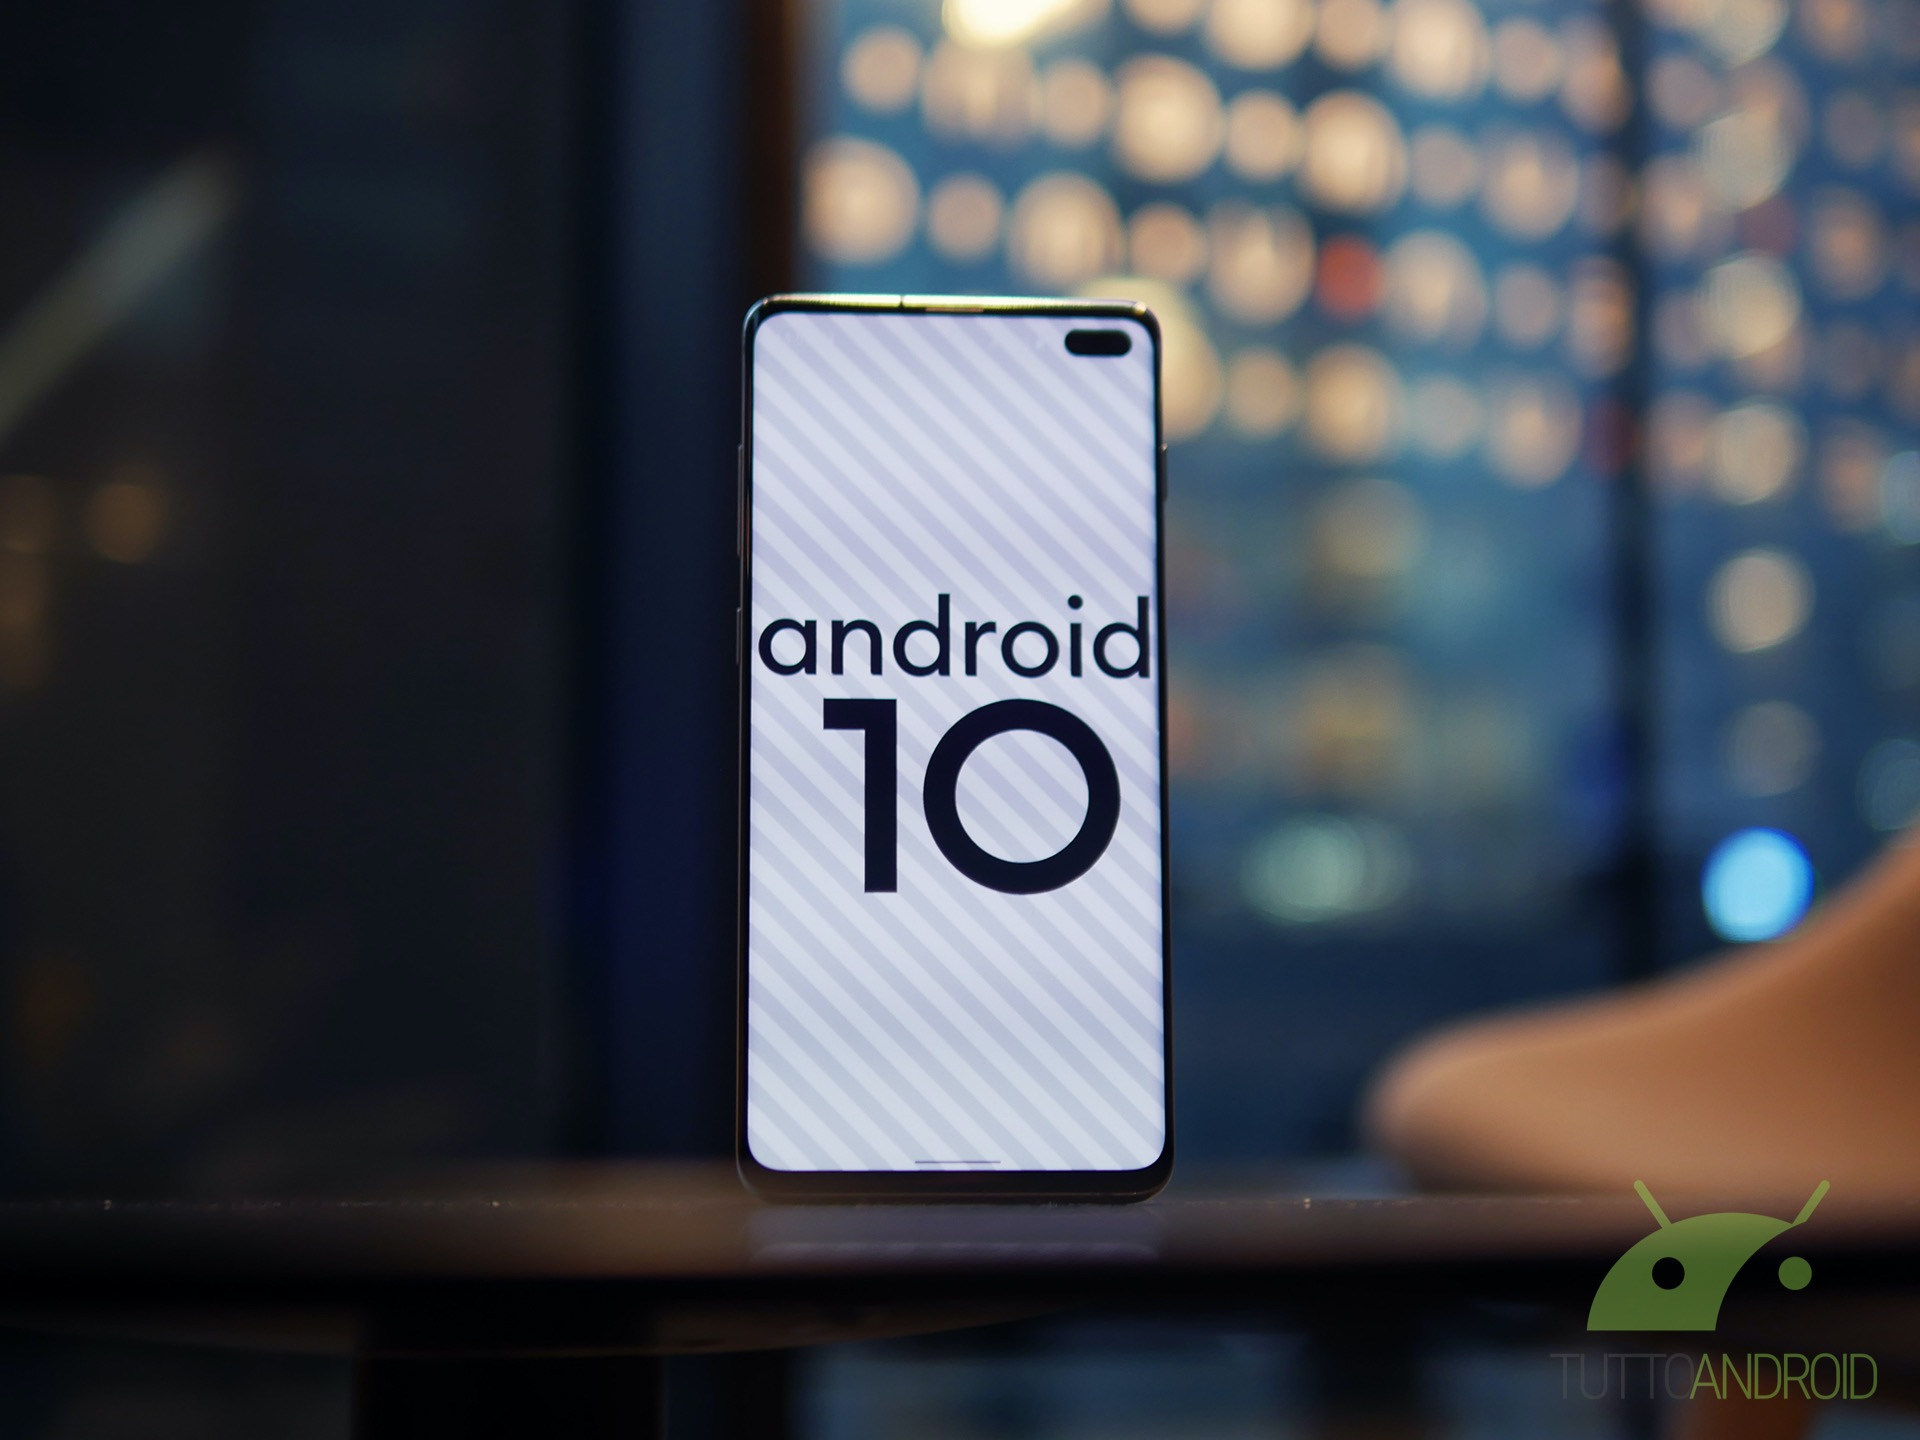 Android 10 Samsung Galaxy S10 +